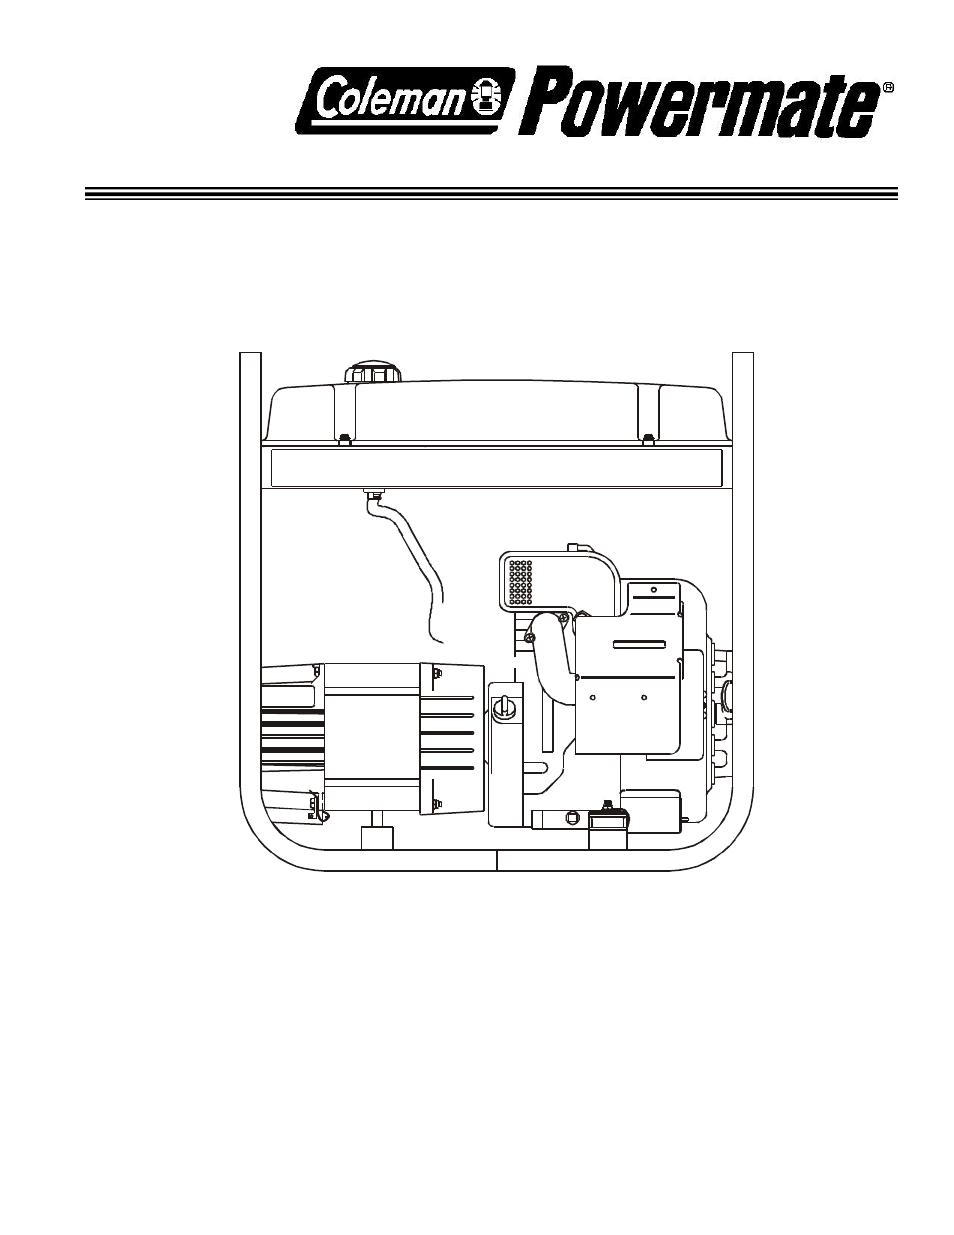 Powermate Maxa 5000 ER PM0525202.02 User Manual | 8 pages | Also for:  PM0525202.02